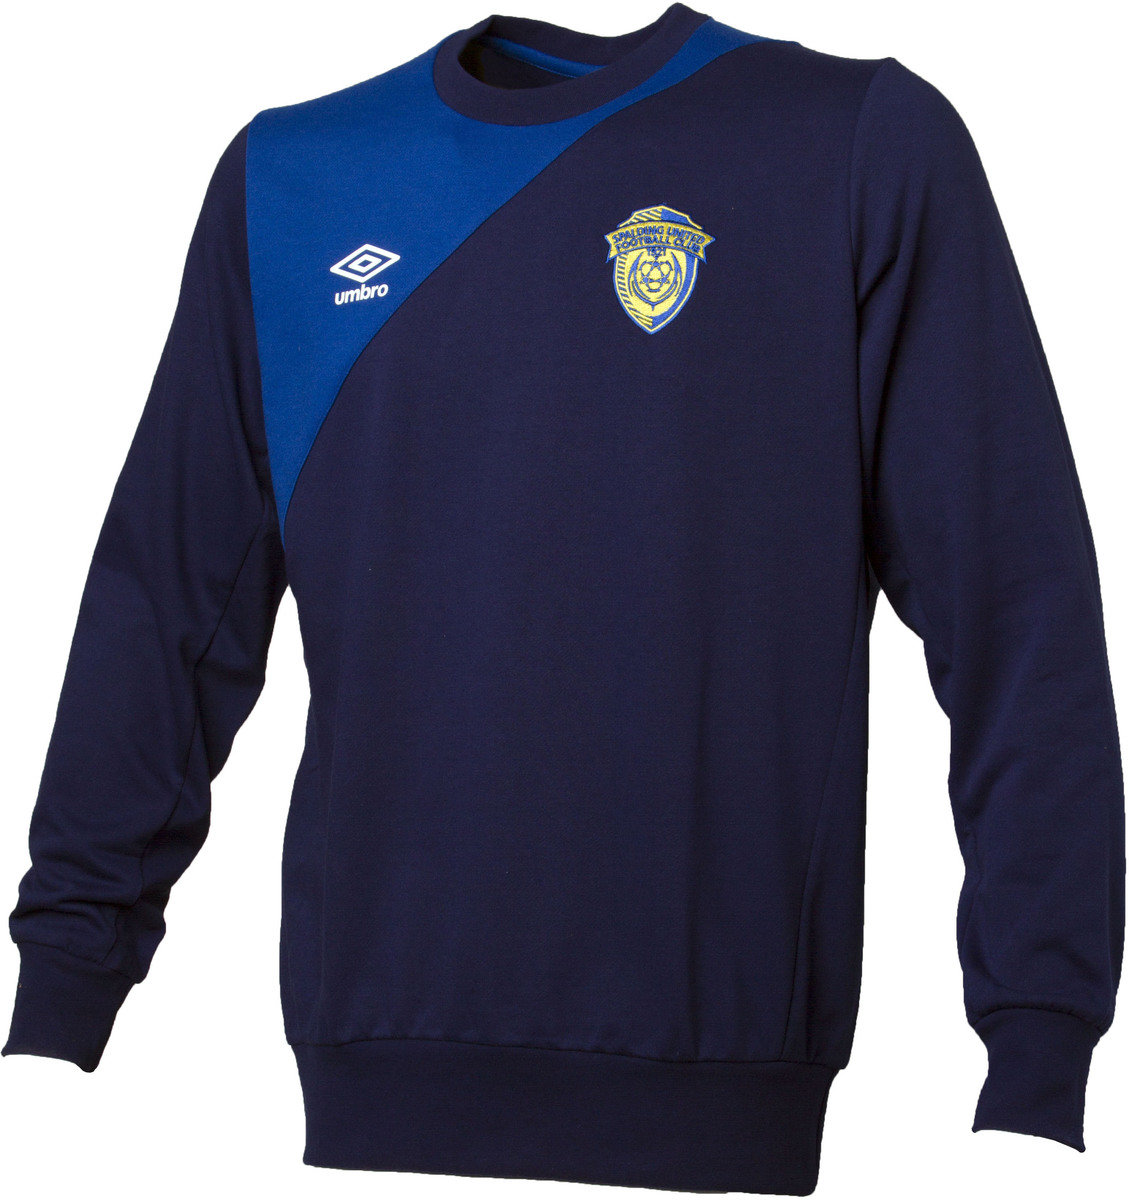 SPALDING UTD 16/17 TRAINING SWEAT